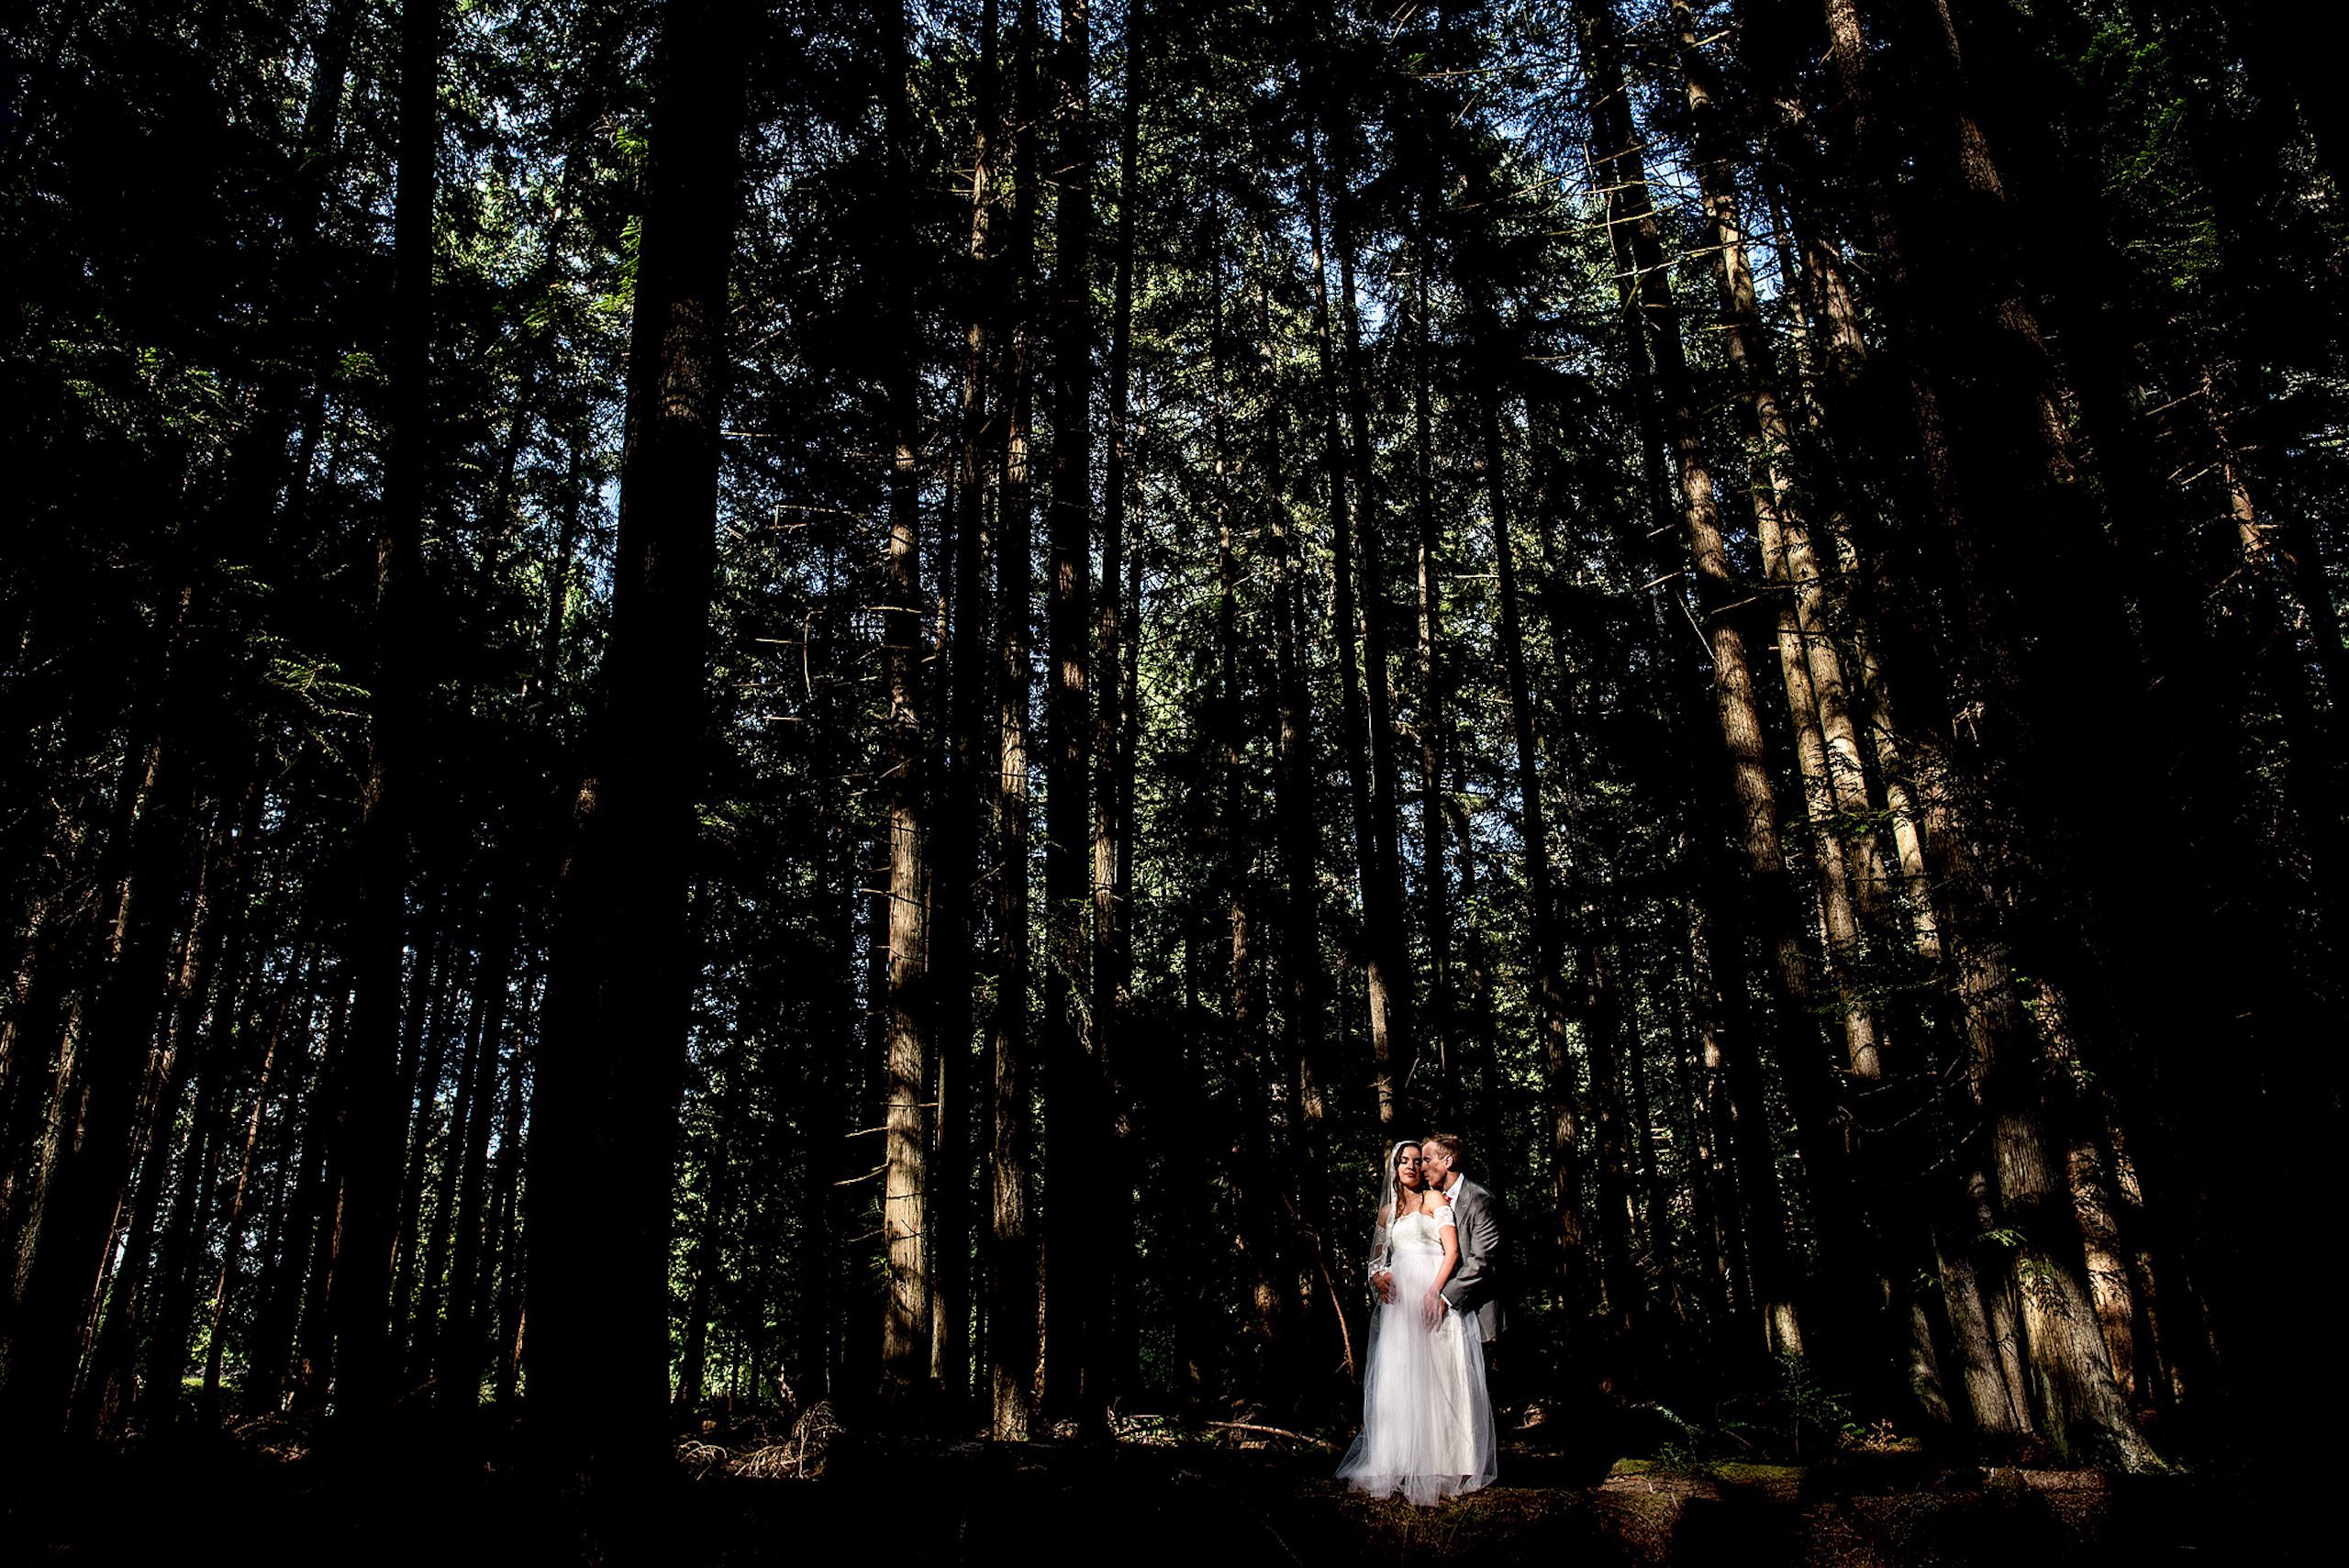 bride and groom embracing each other in the forest - Qualicum Wedding Photographer